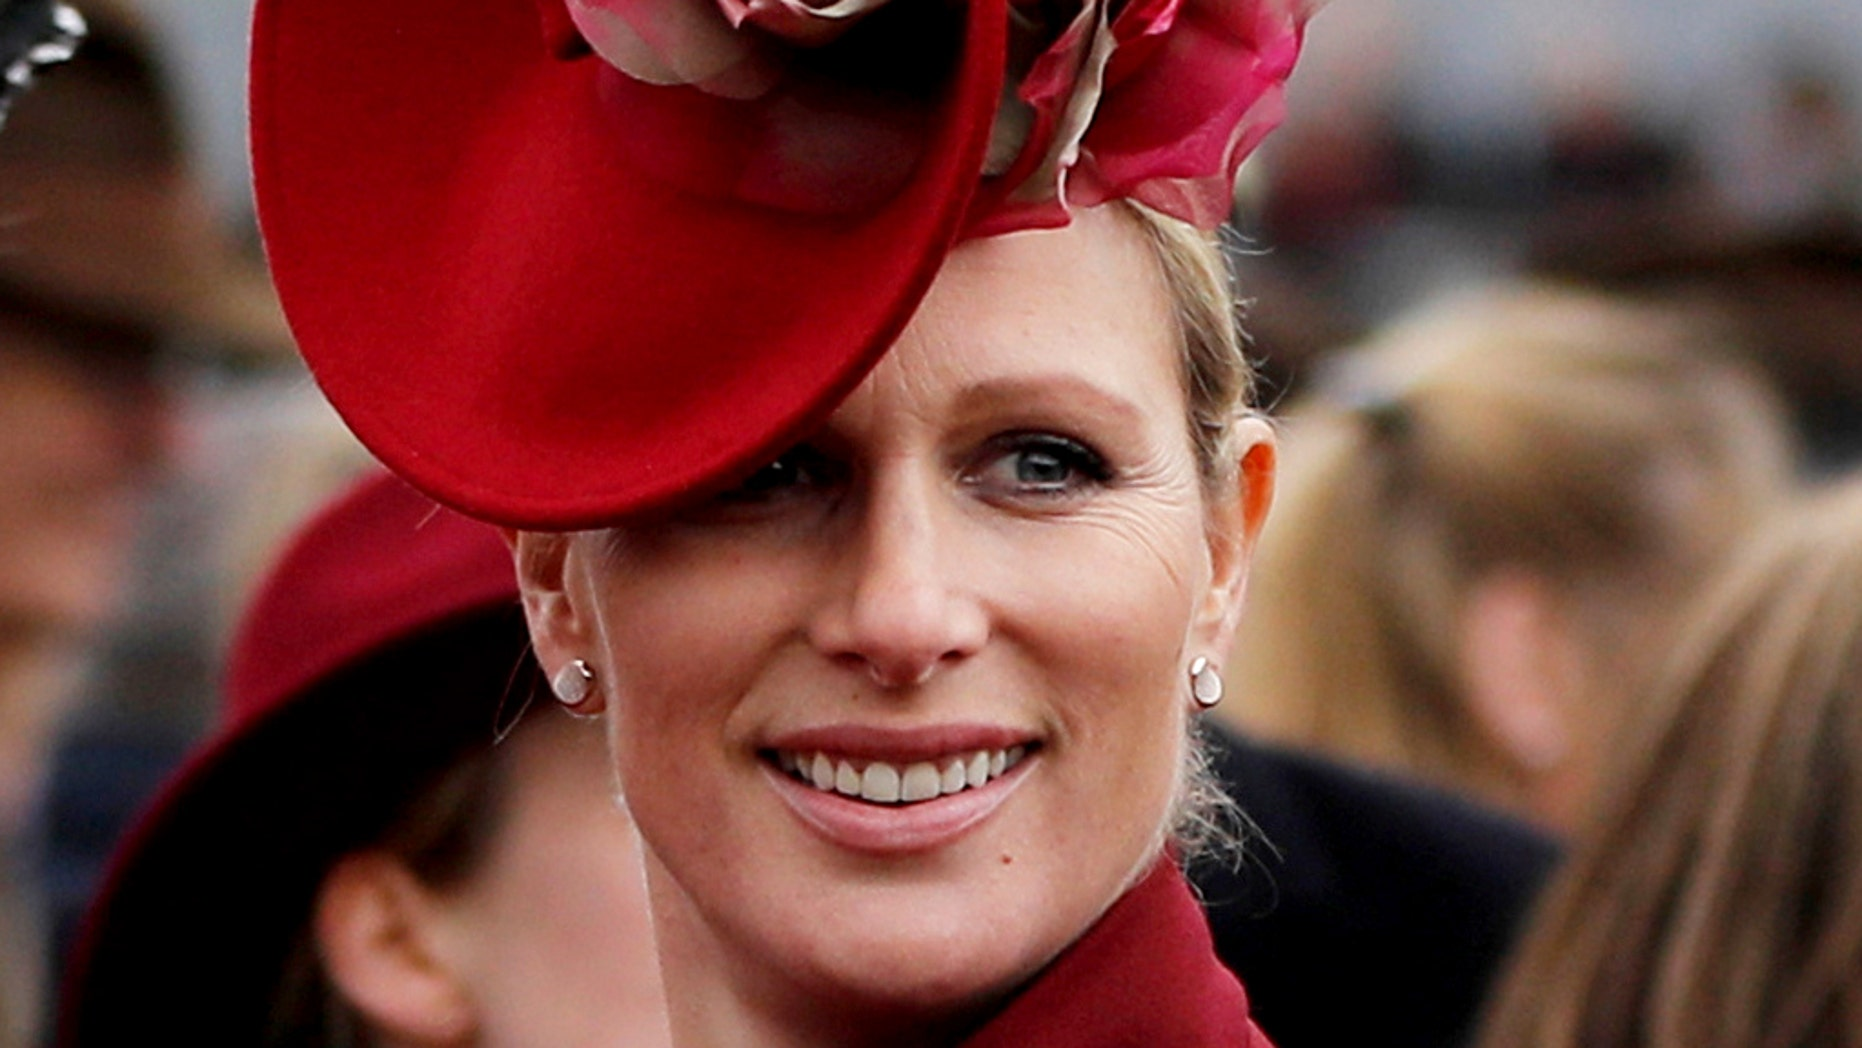 Zara Tindall gave birth to a baby girl on June 18, 2018.